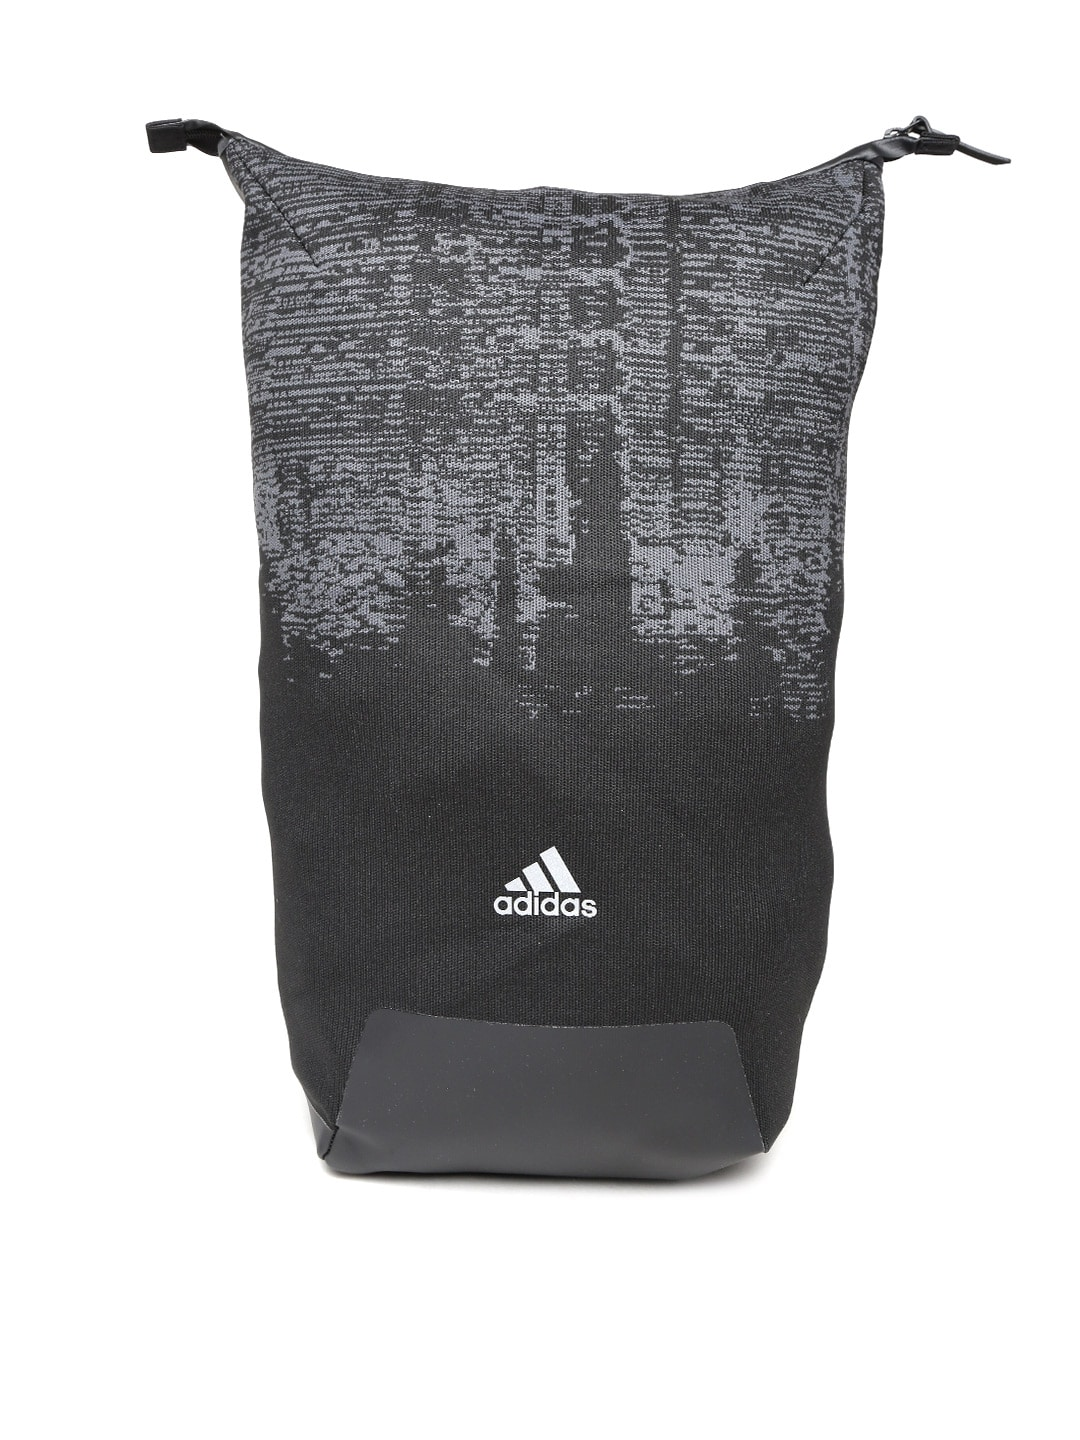 aded6da22f7f Adidas Climacool Backpacks Online In India